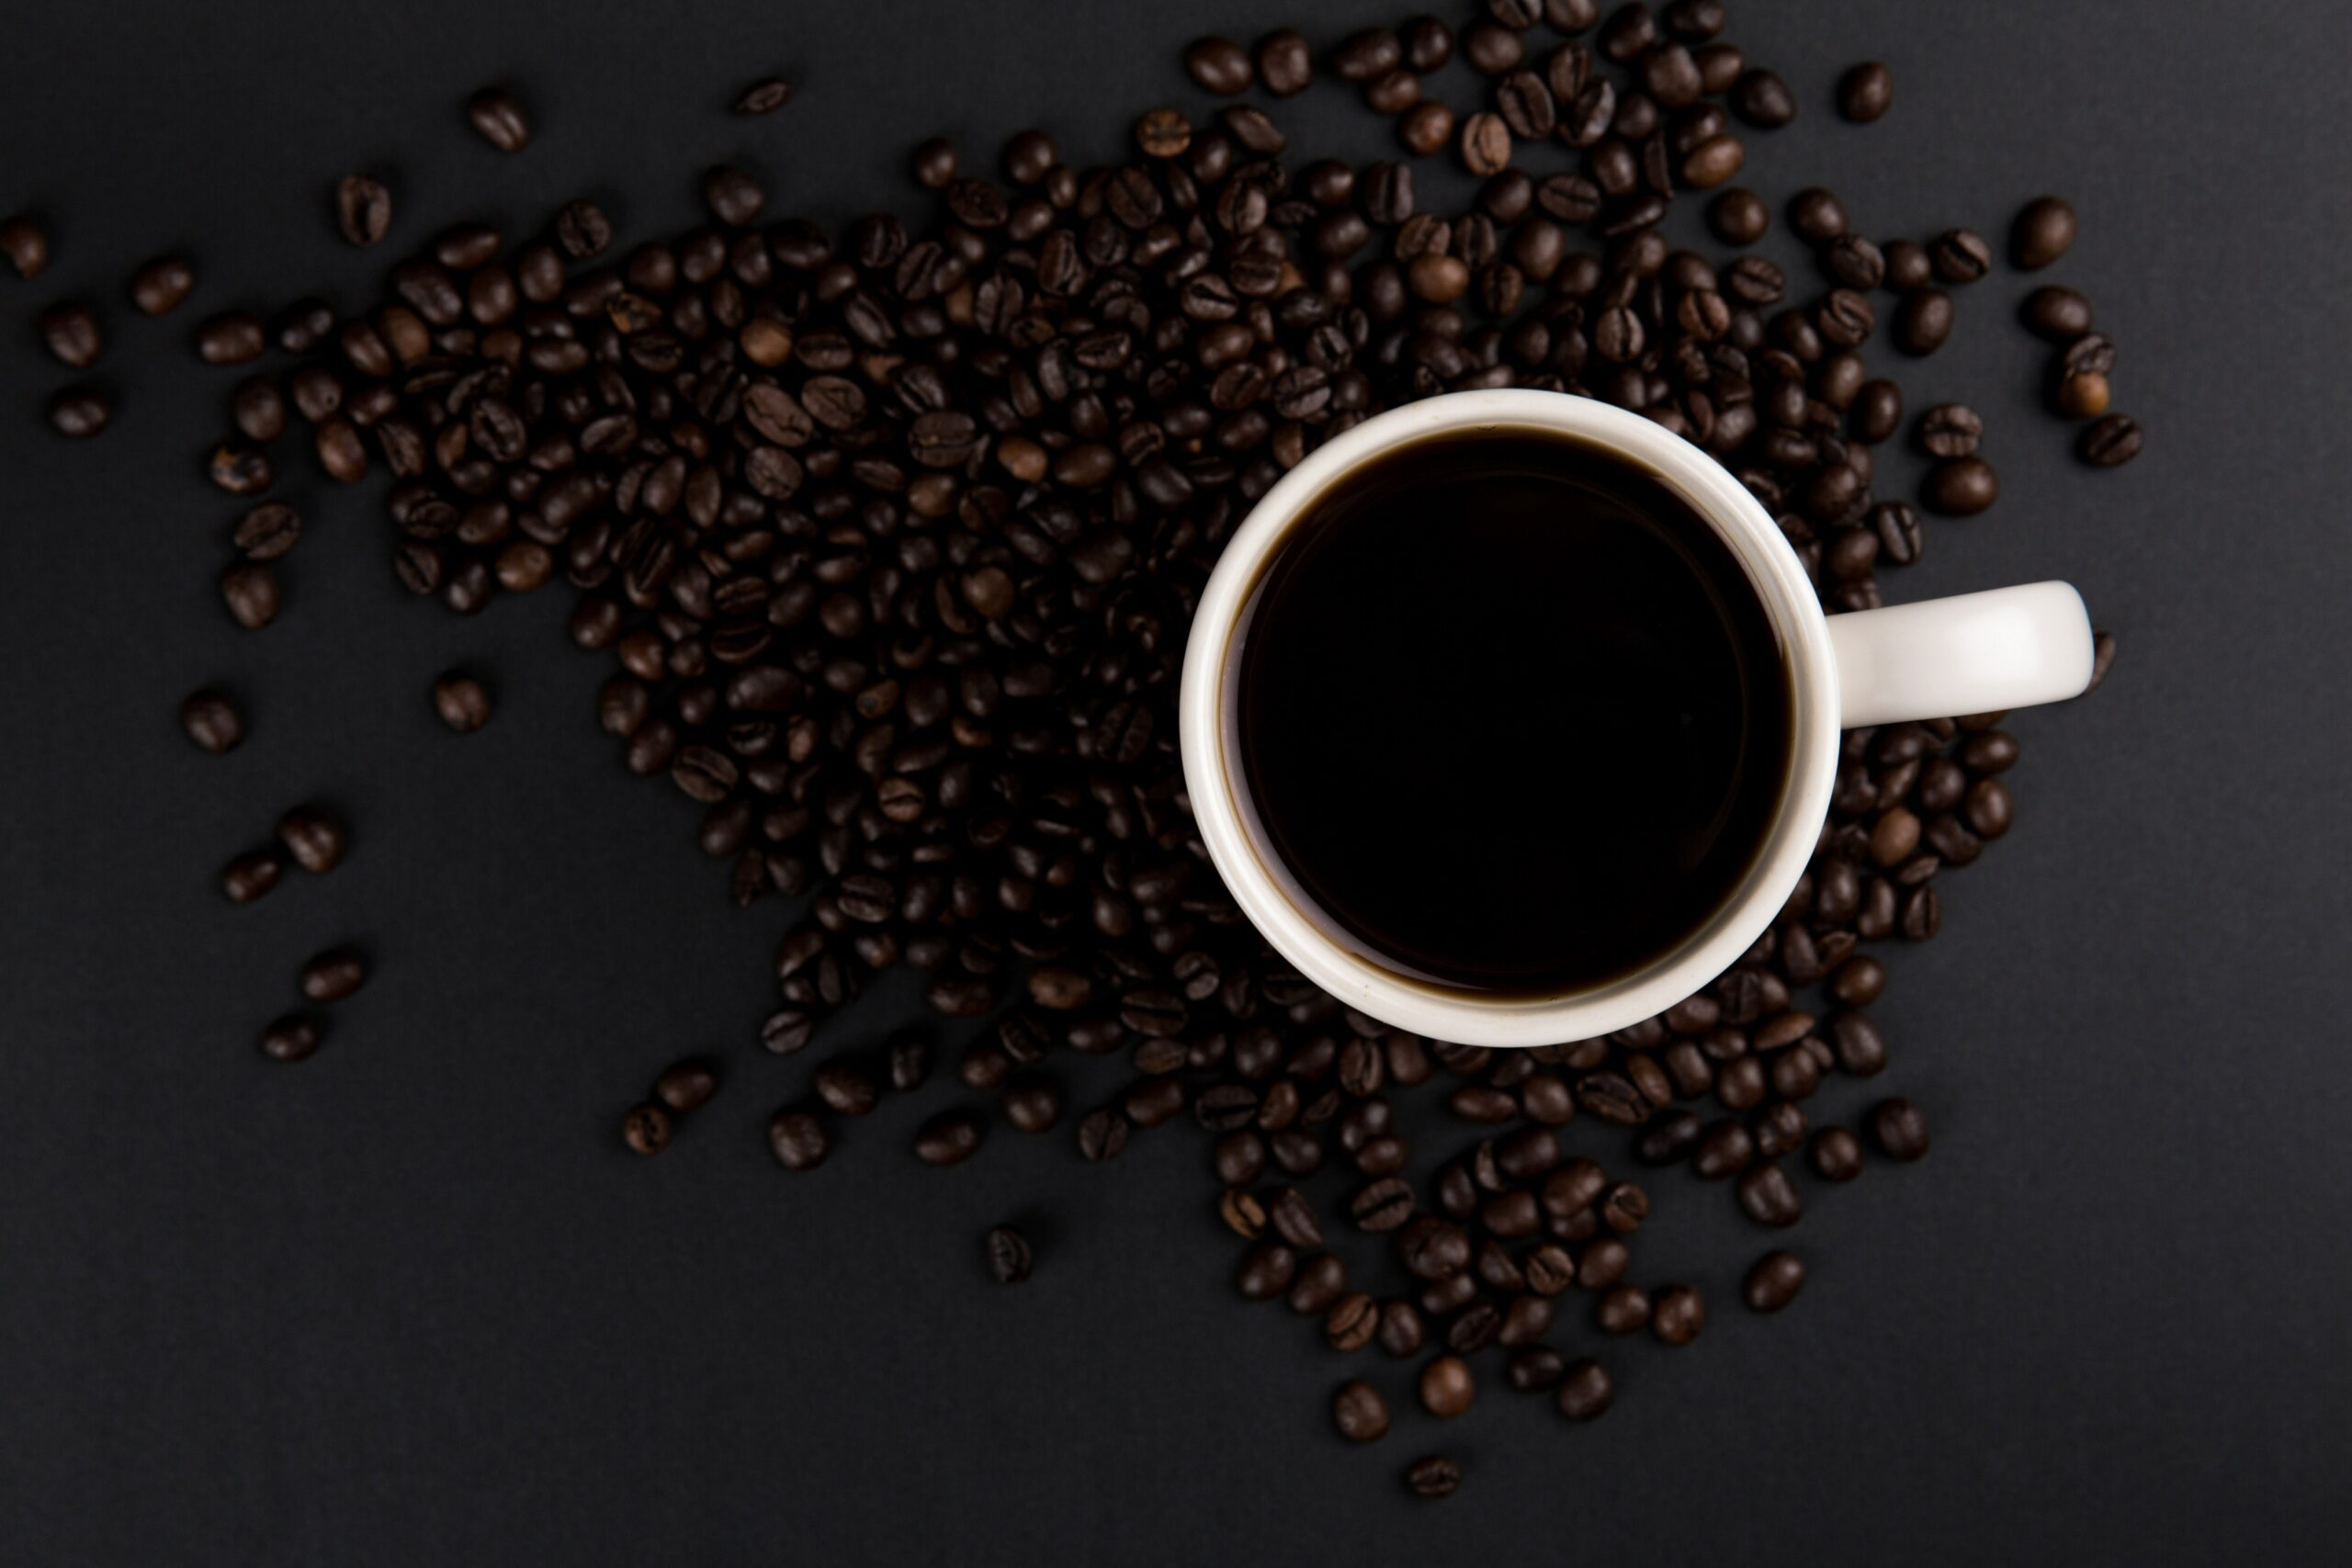 picture of coffee mug and coffee beans